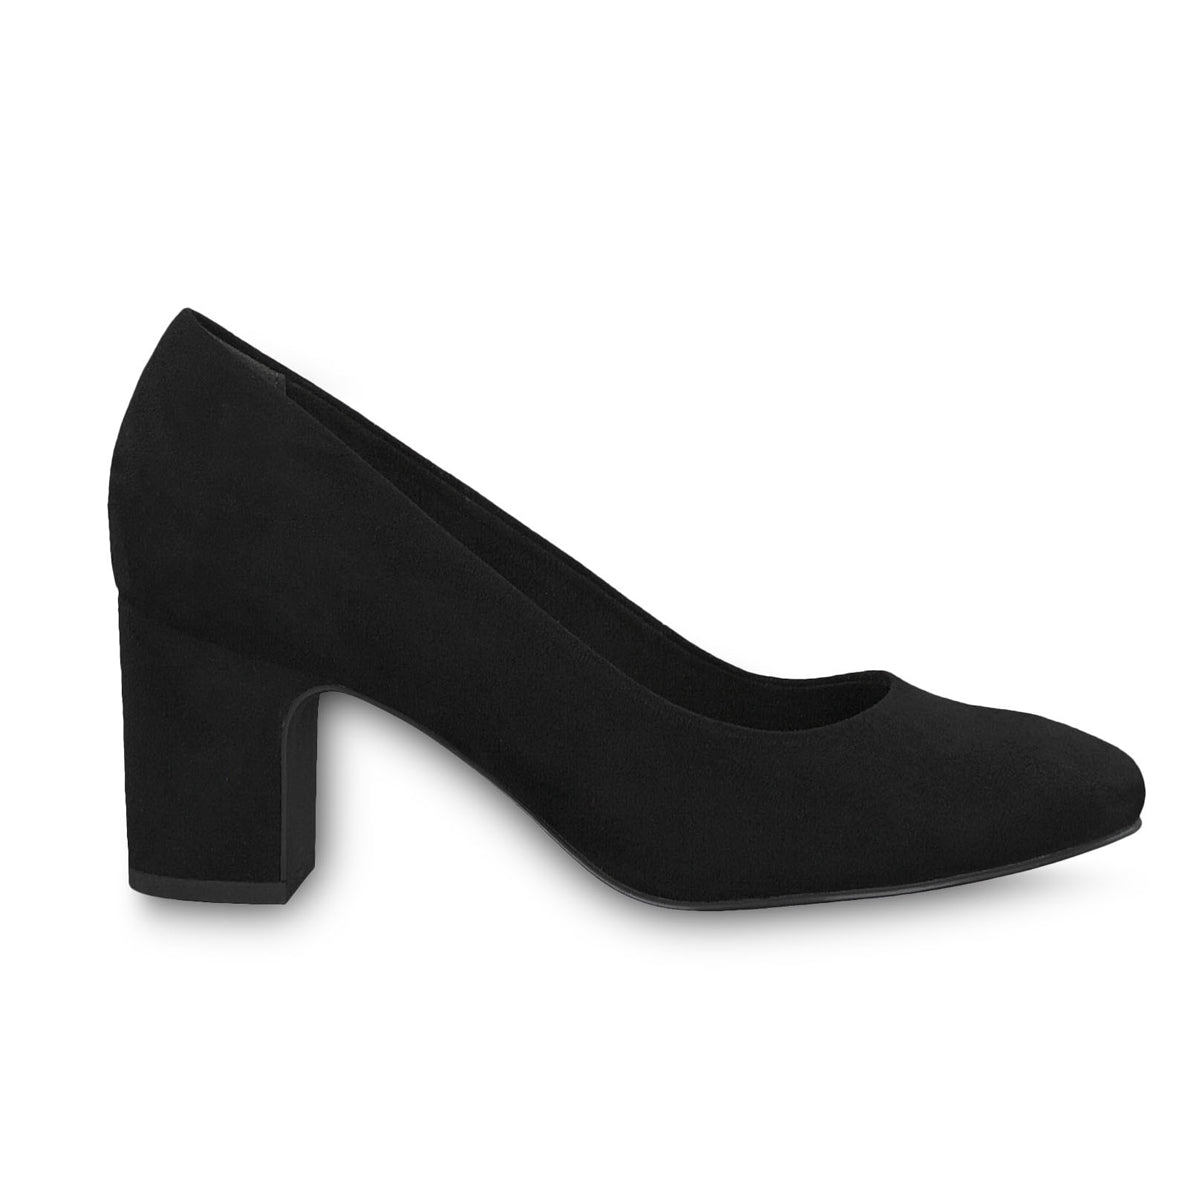 Tamaris Black Court Shoe 22458